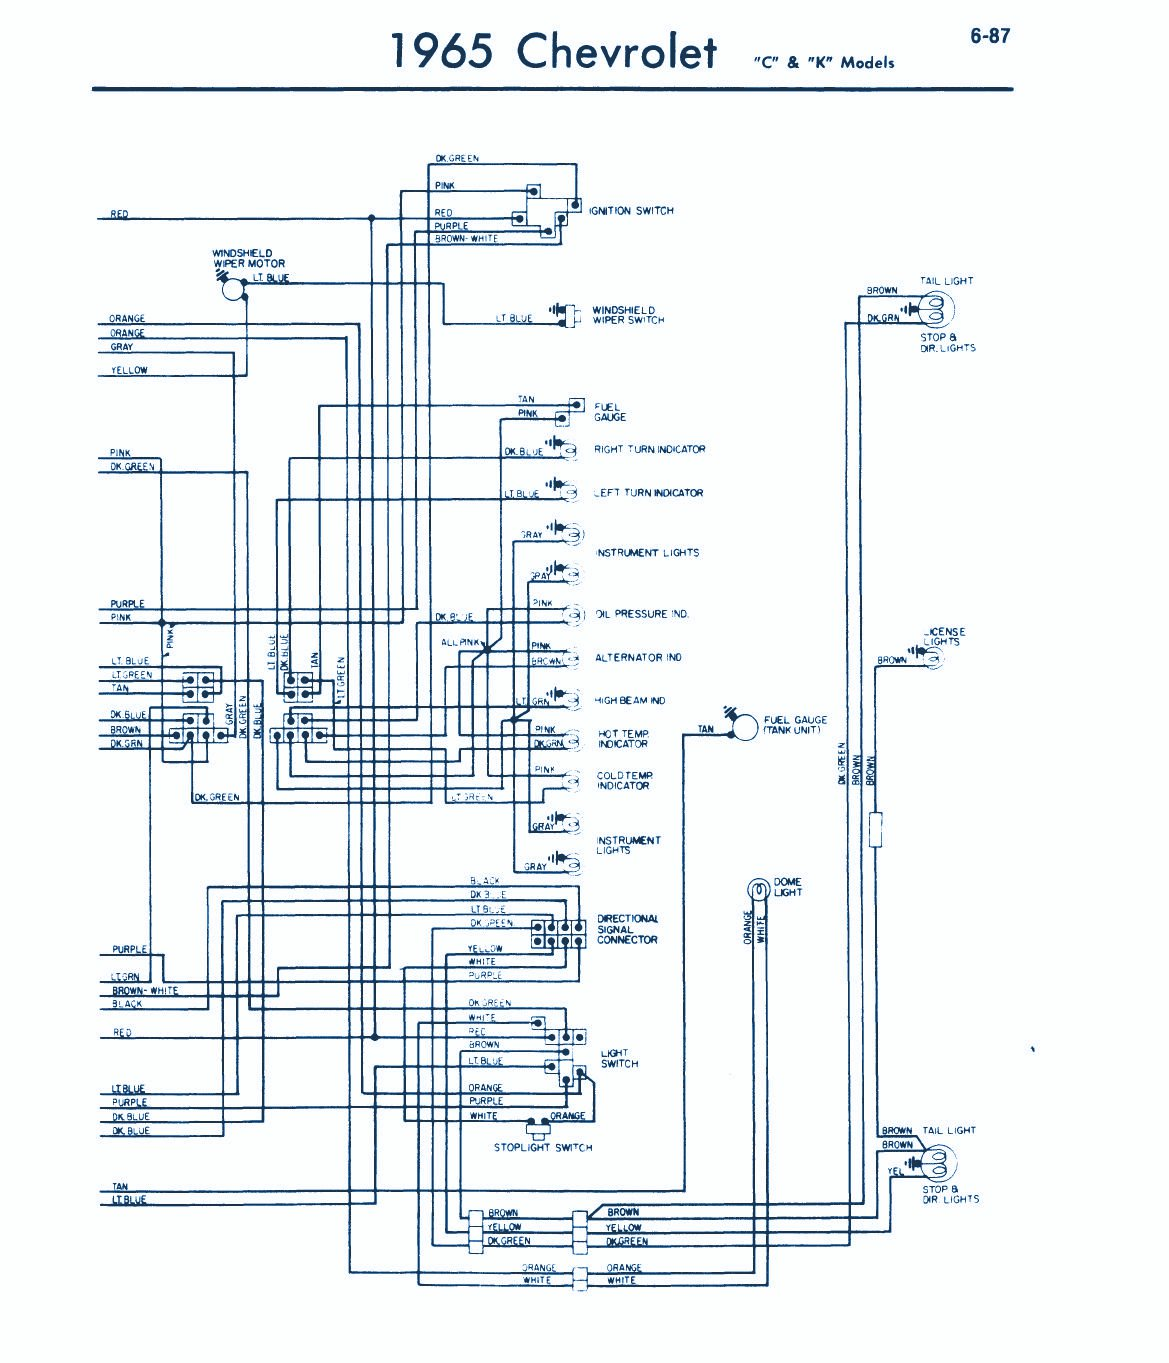 1965 Chevrolet Wiring Diagram | Auto Wiring Diagrams